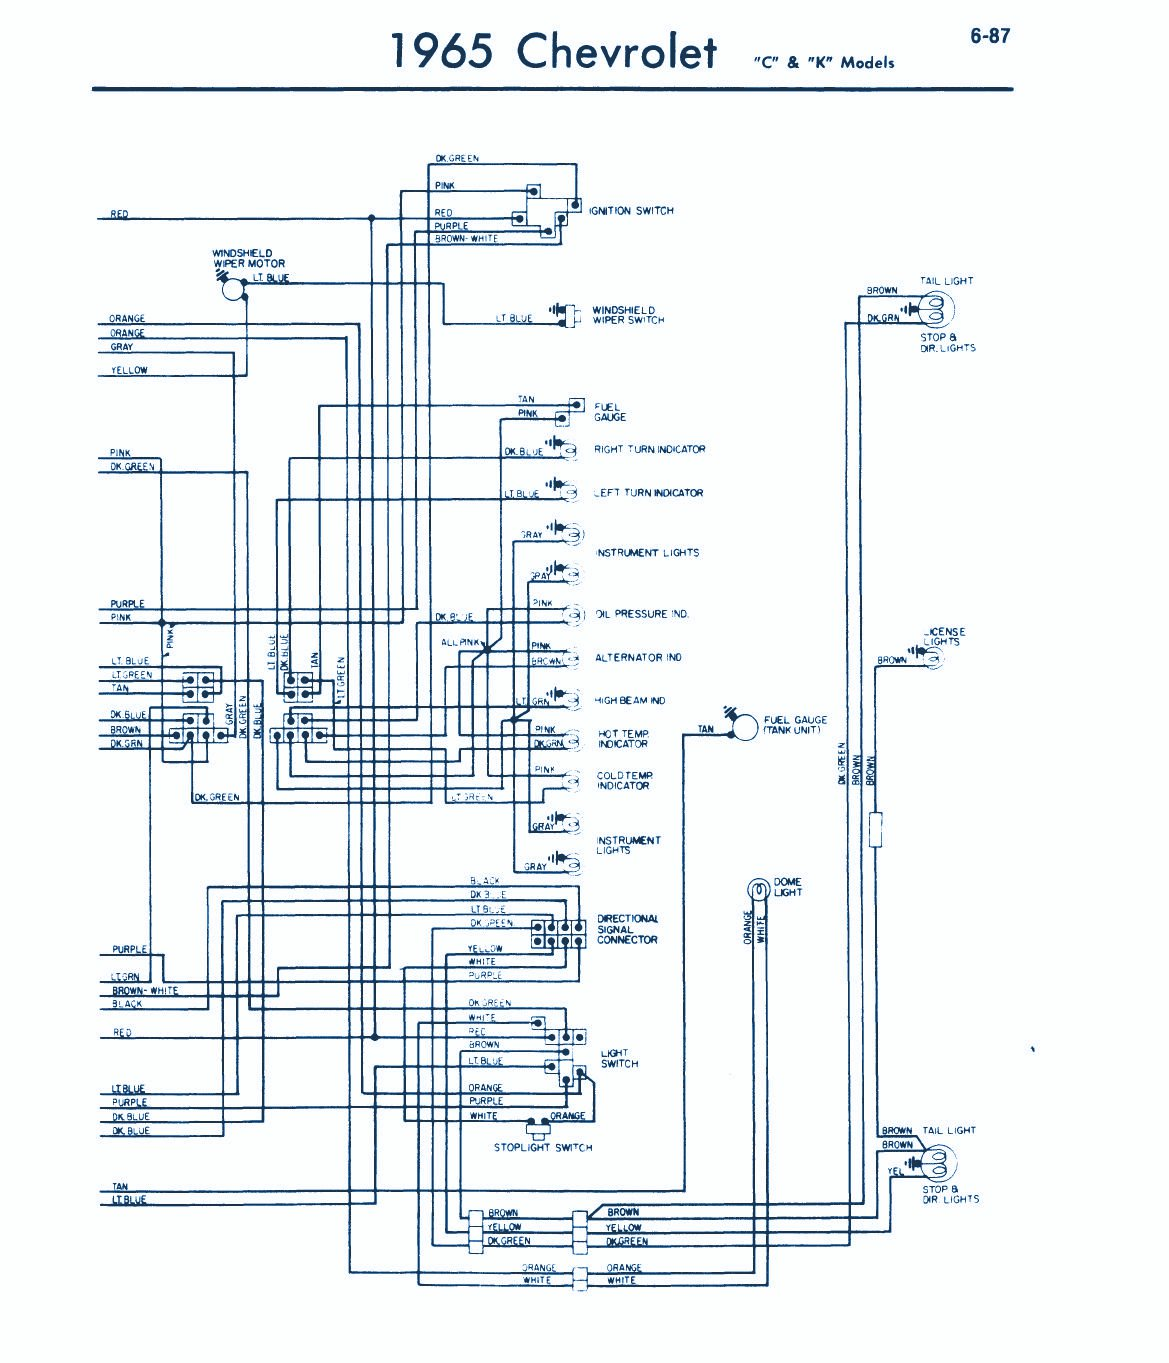 1965 Chevrolet Wiring Diagram | Auto Wiring Diagrams